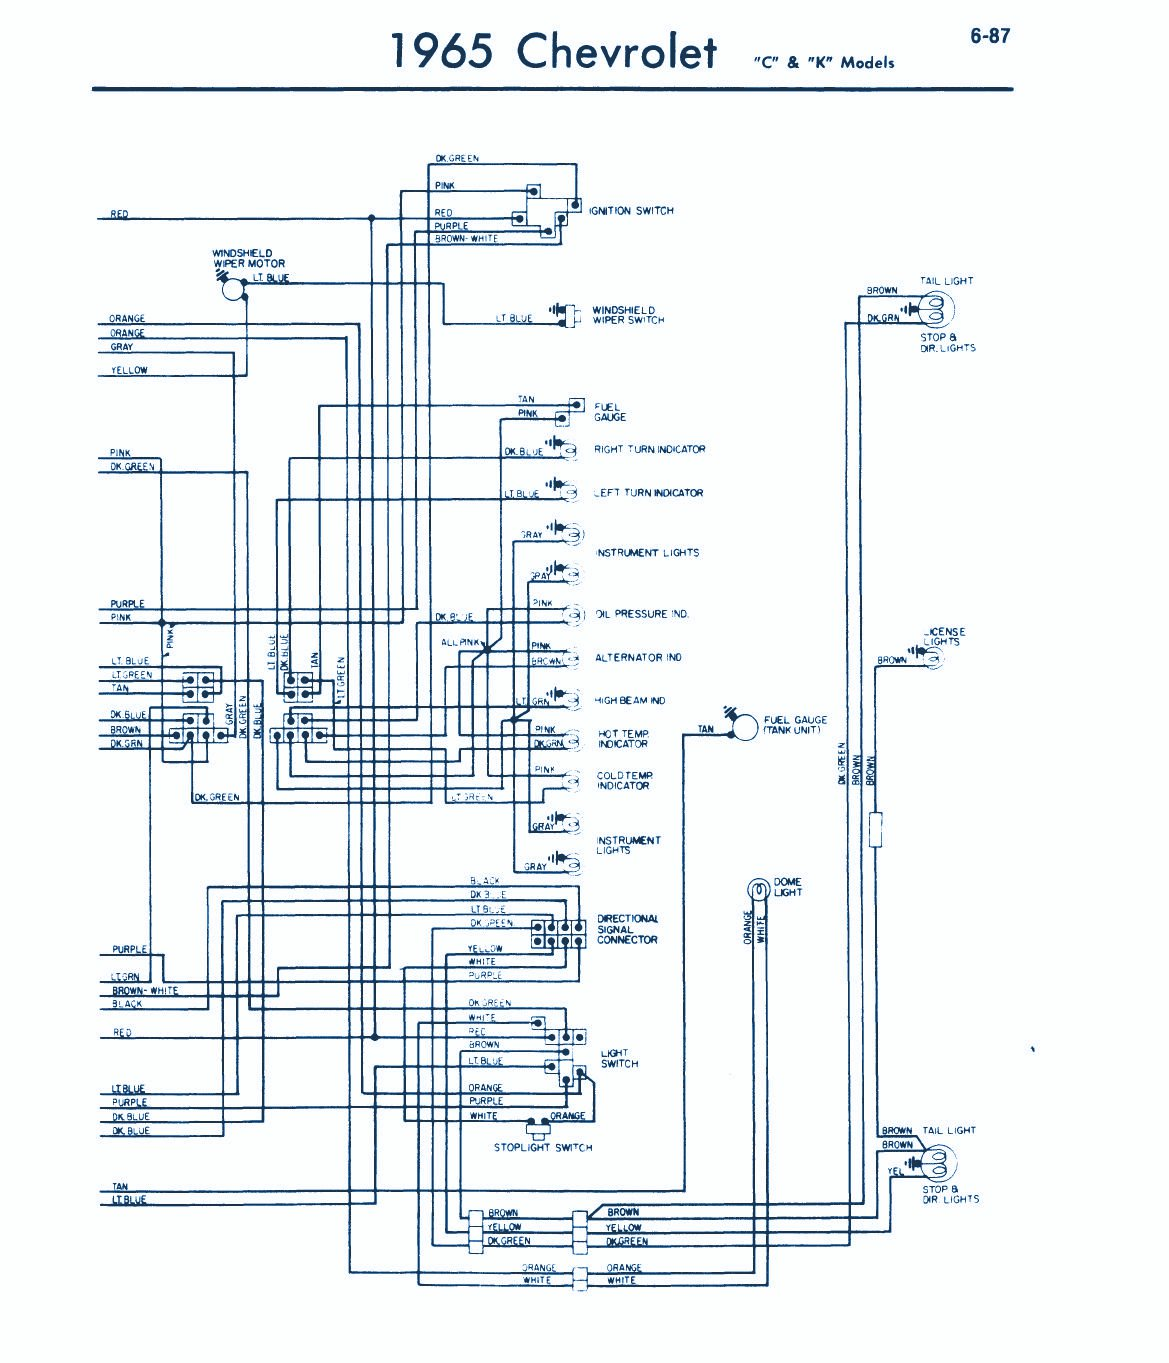 1965 Chevrolet Wiring Diagram | Auto Wiring Diagrams